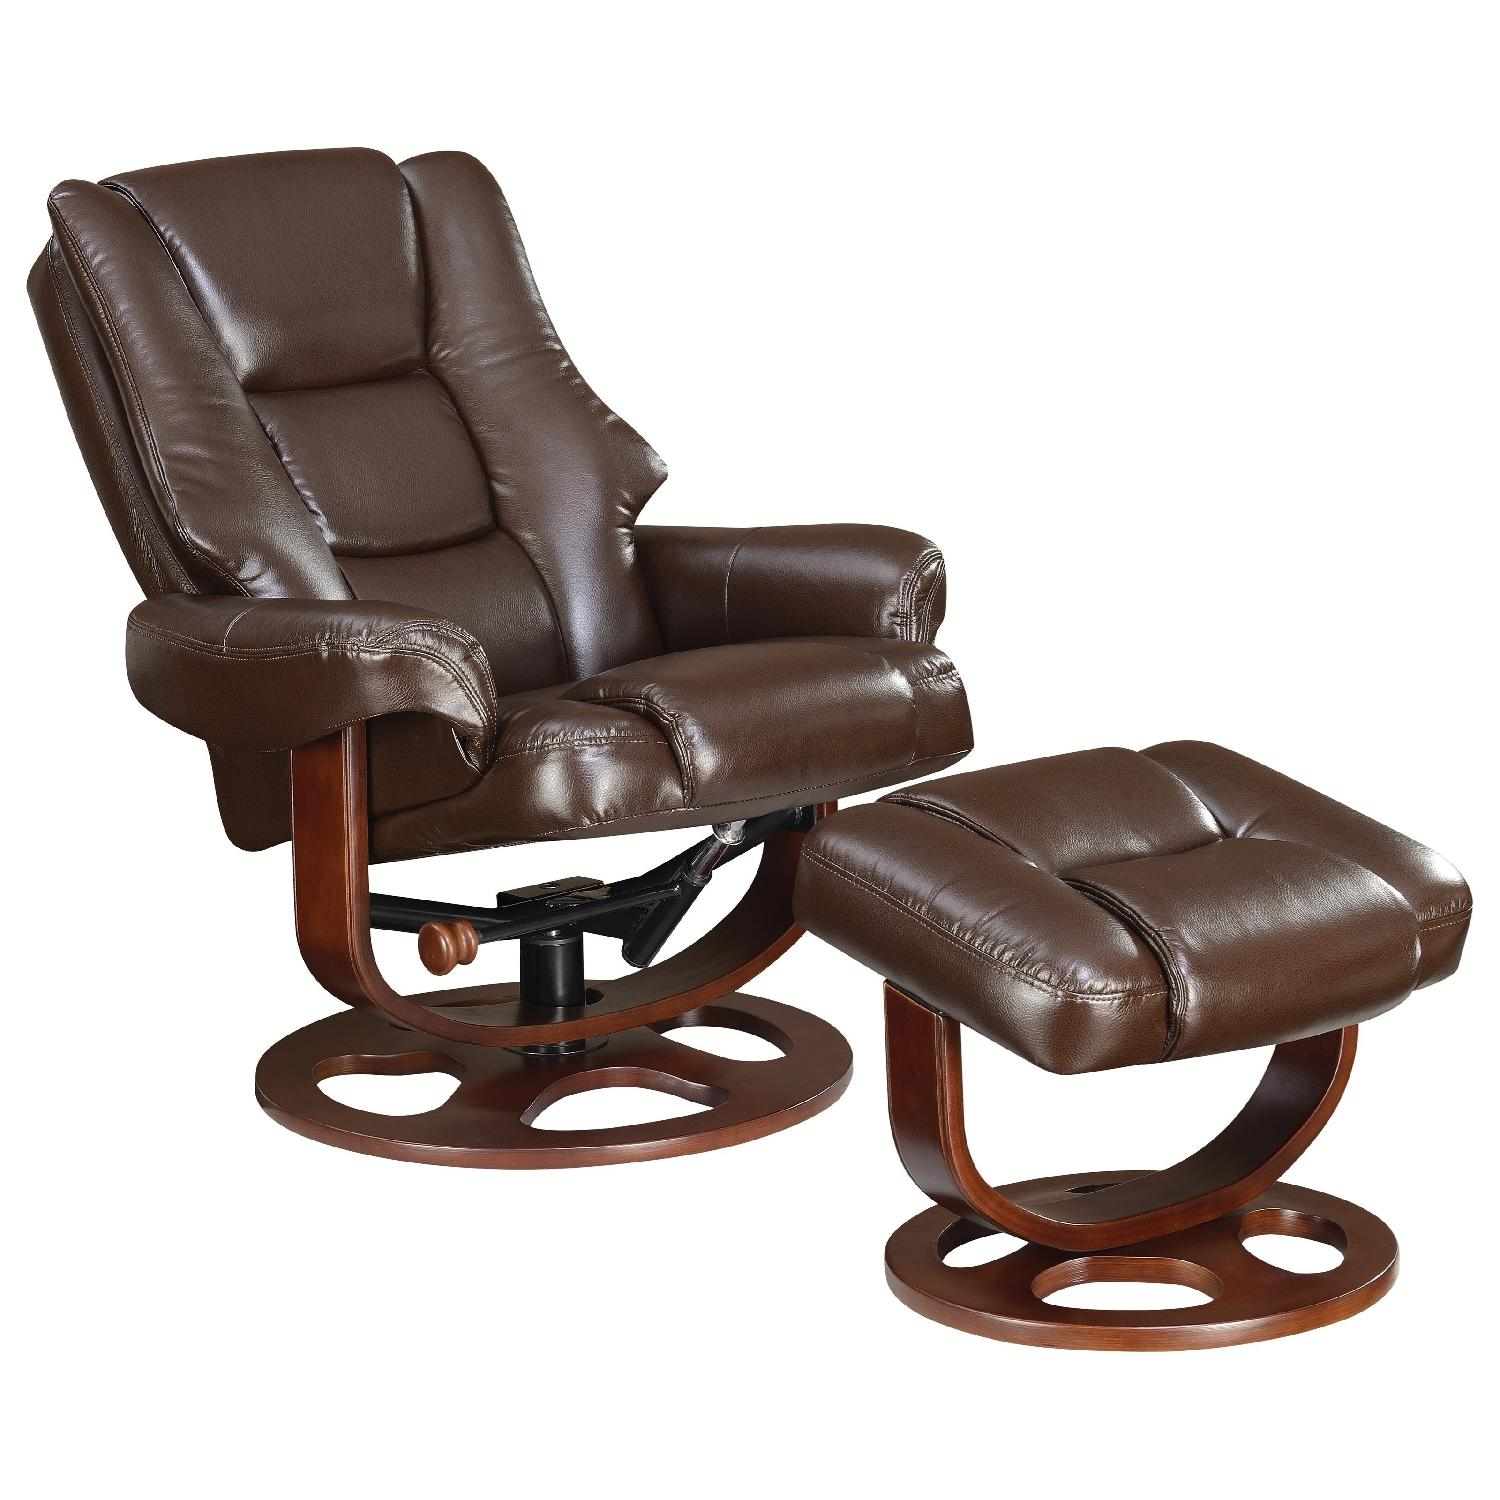 Swivel Recliner Chair  Ottoman Set in Brown  AptDeco